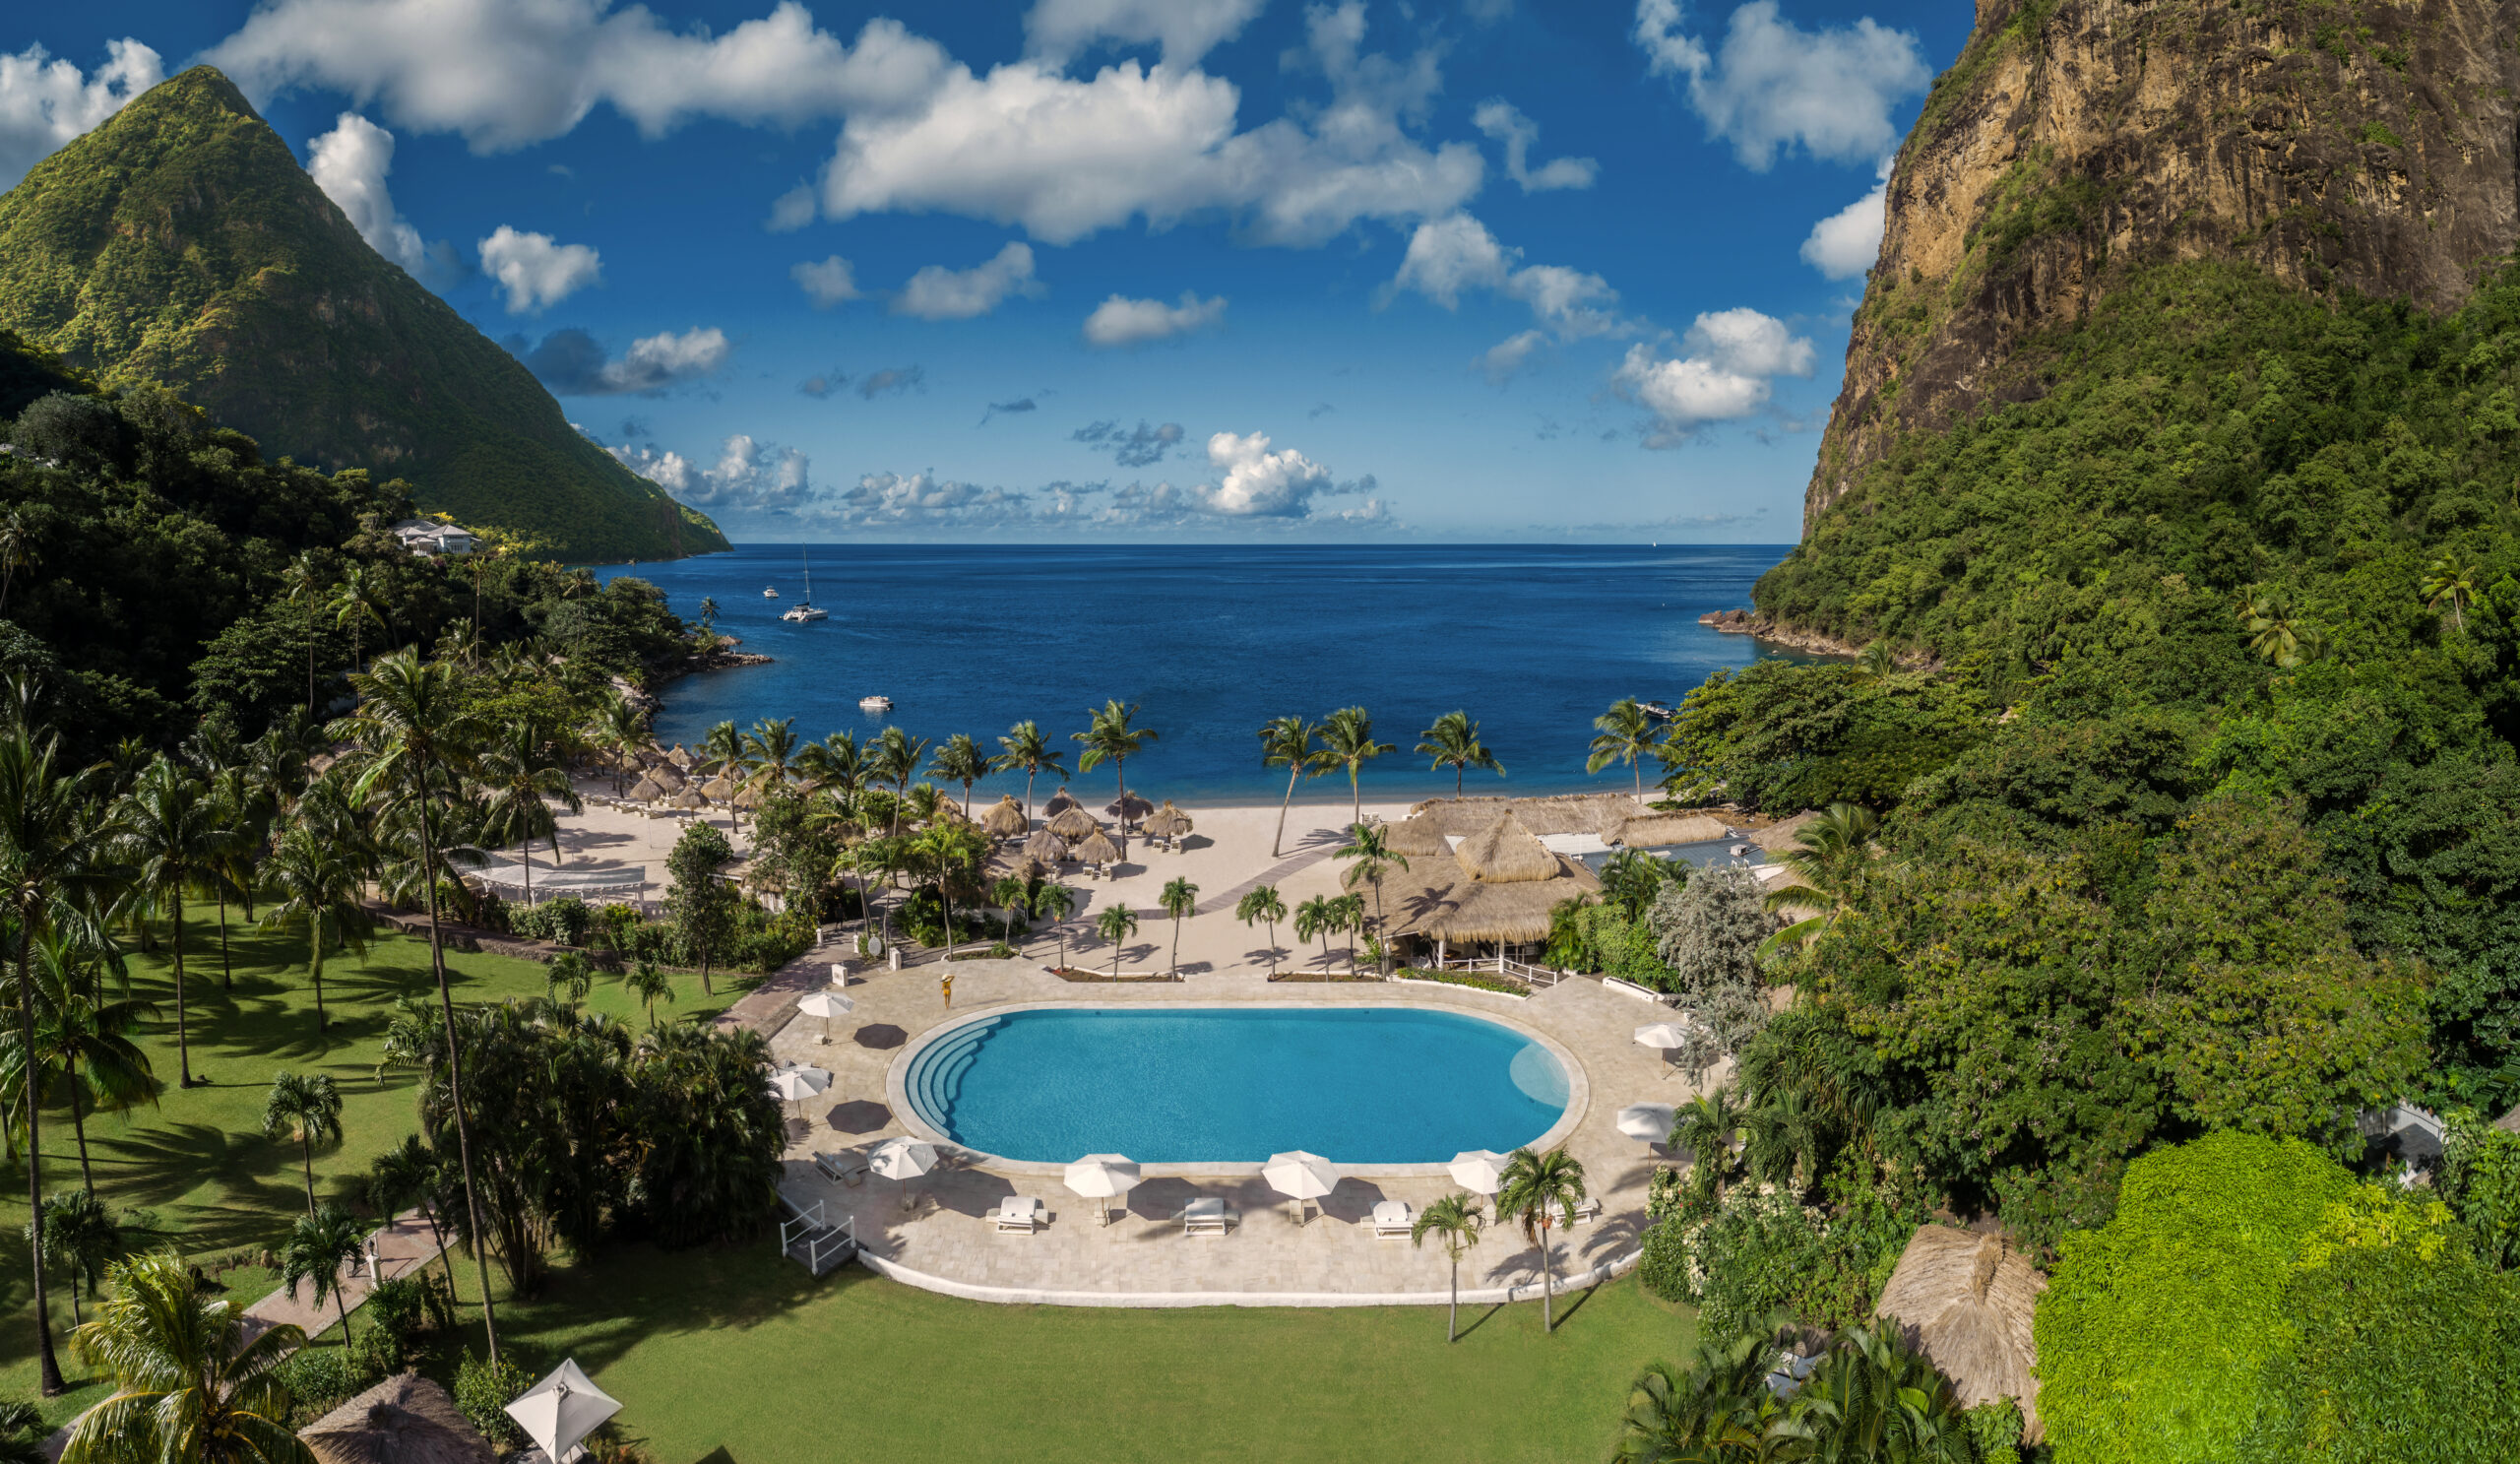 Pool at Sugar Beach, St Lucia